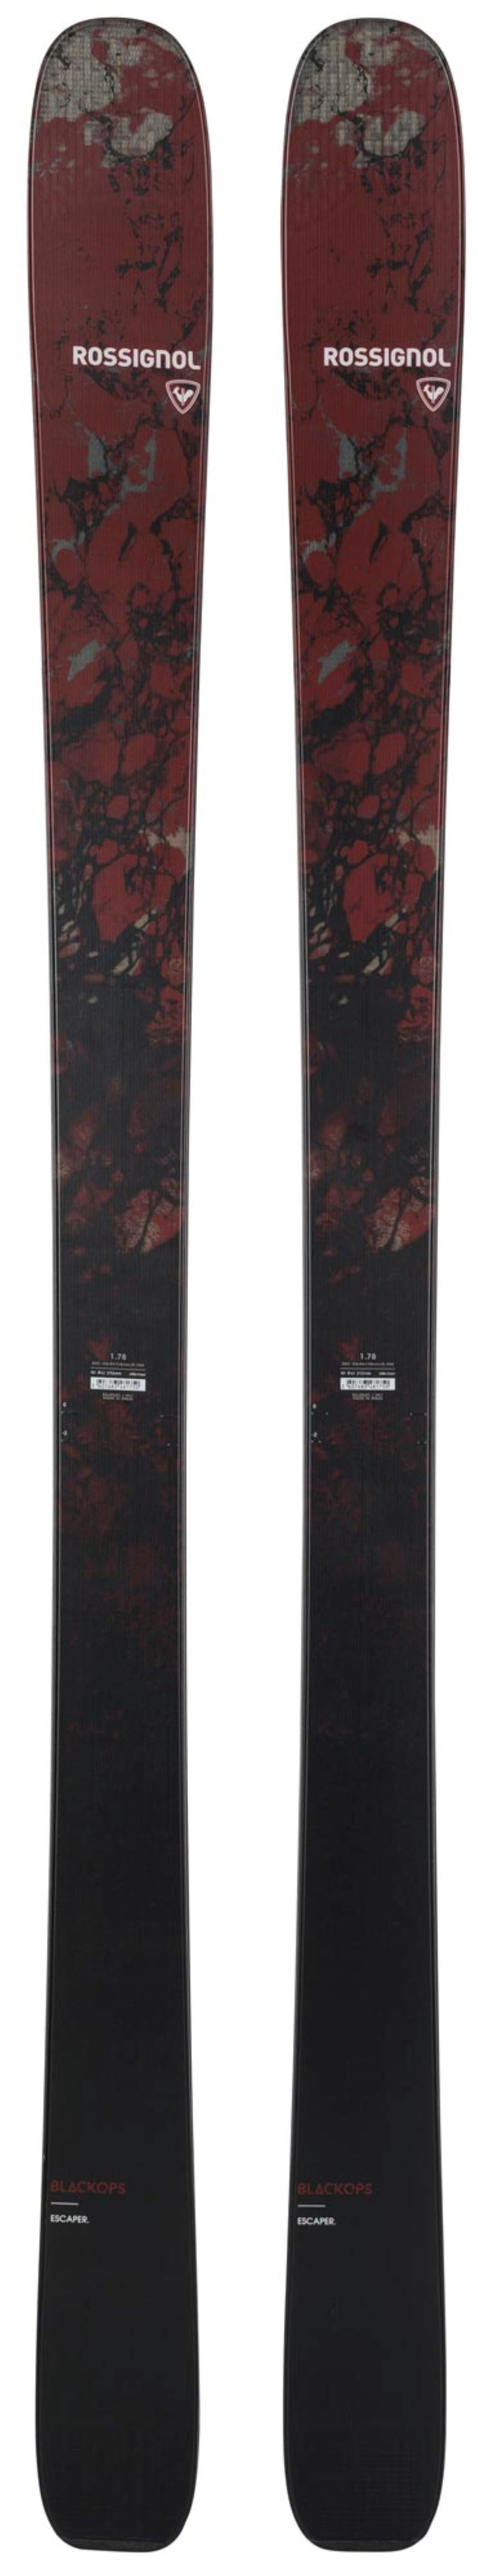 ROSSIGNOL MEN'S BLACKOPS ESCAPER SKI